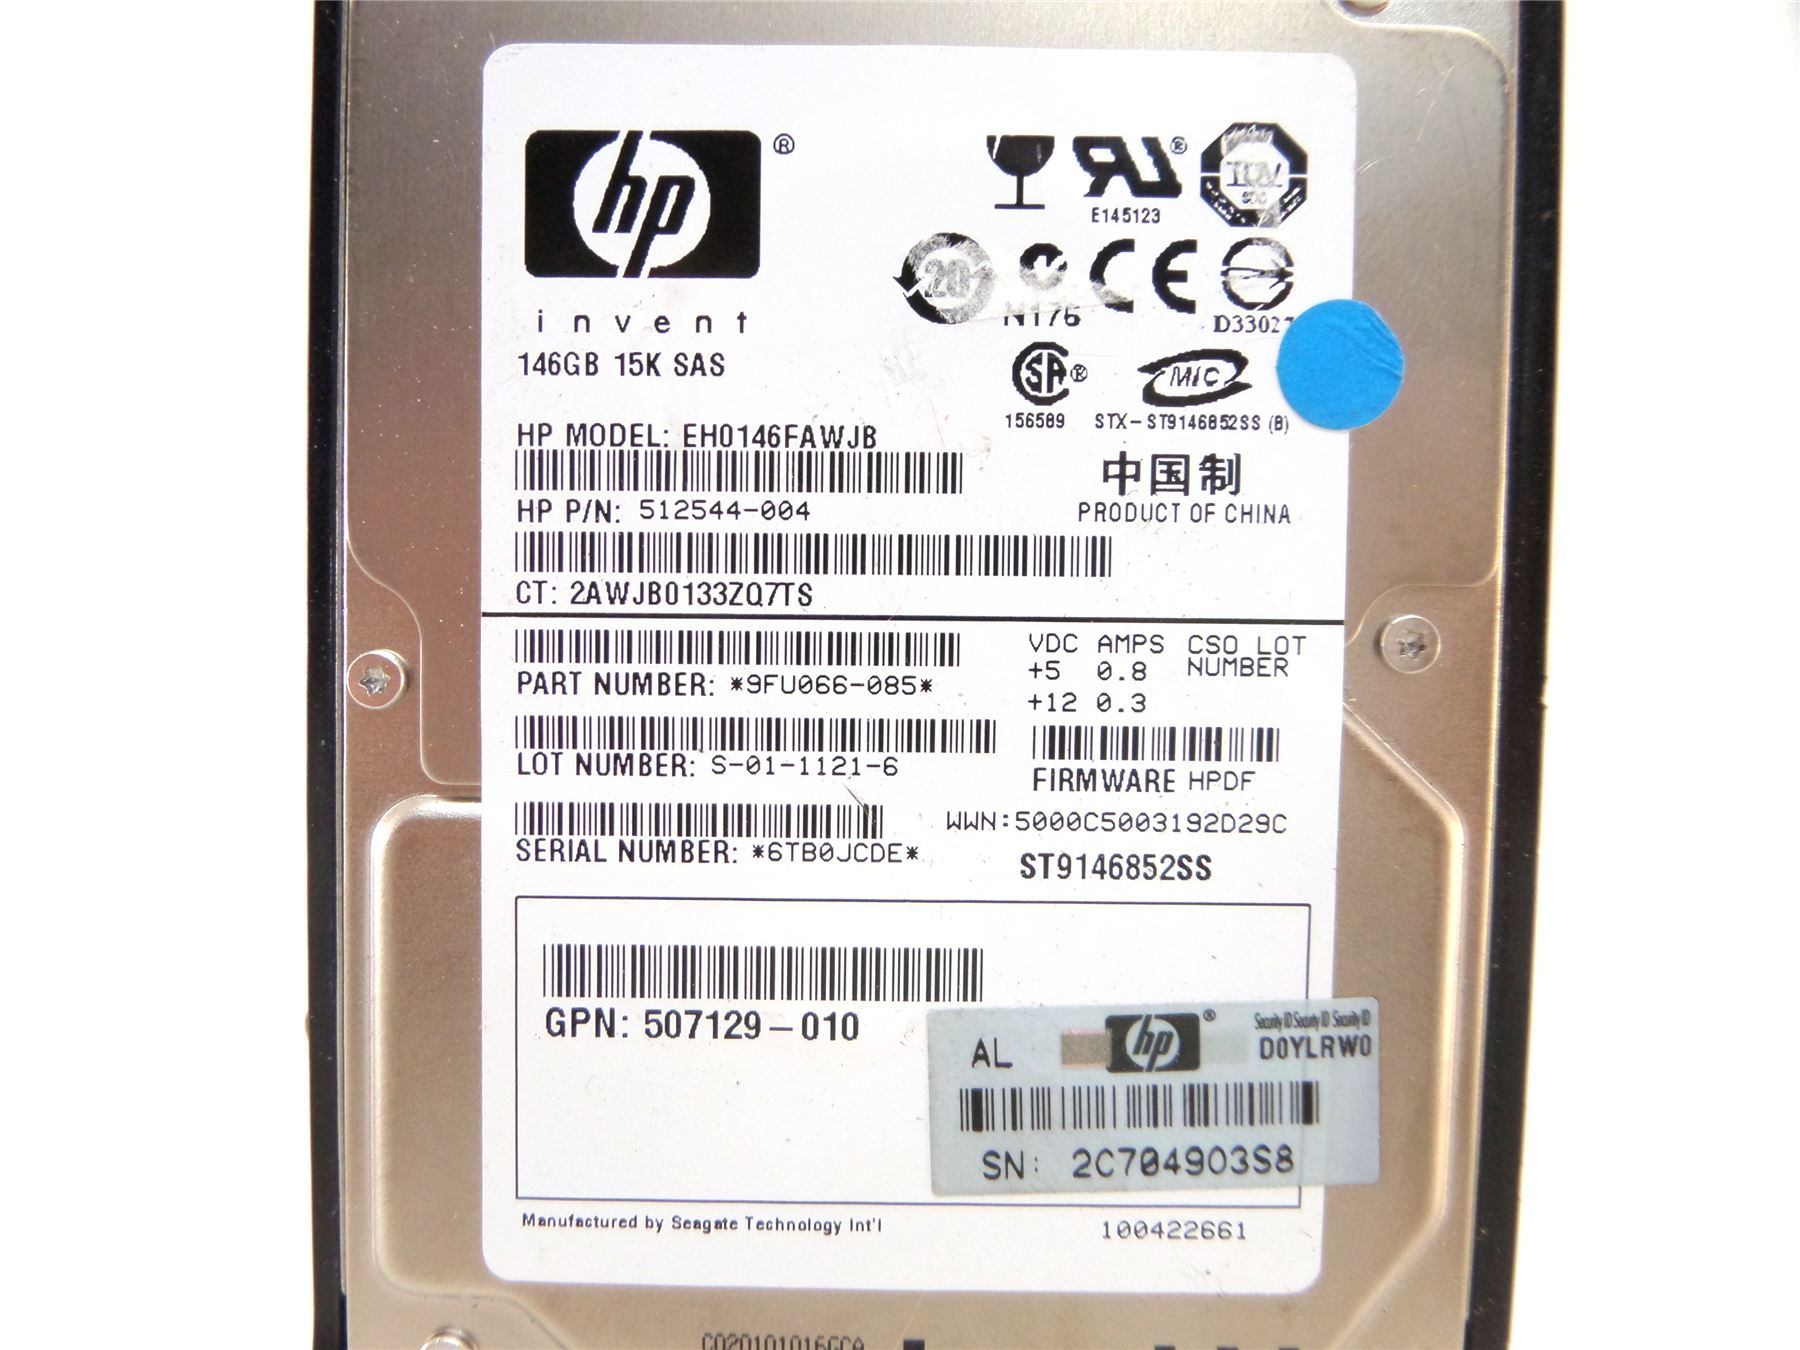 Sas Bad 24 Details About Hp Eh0146fawjb 146gb 10k 2 5